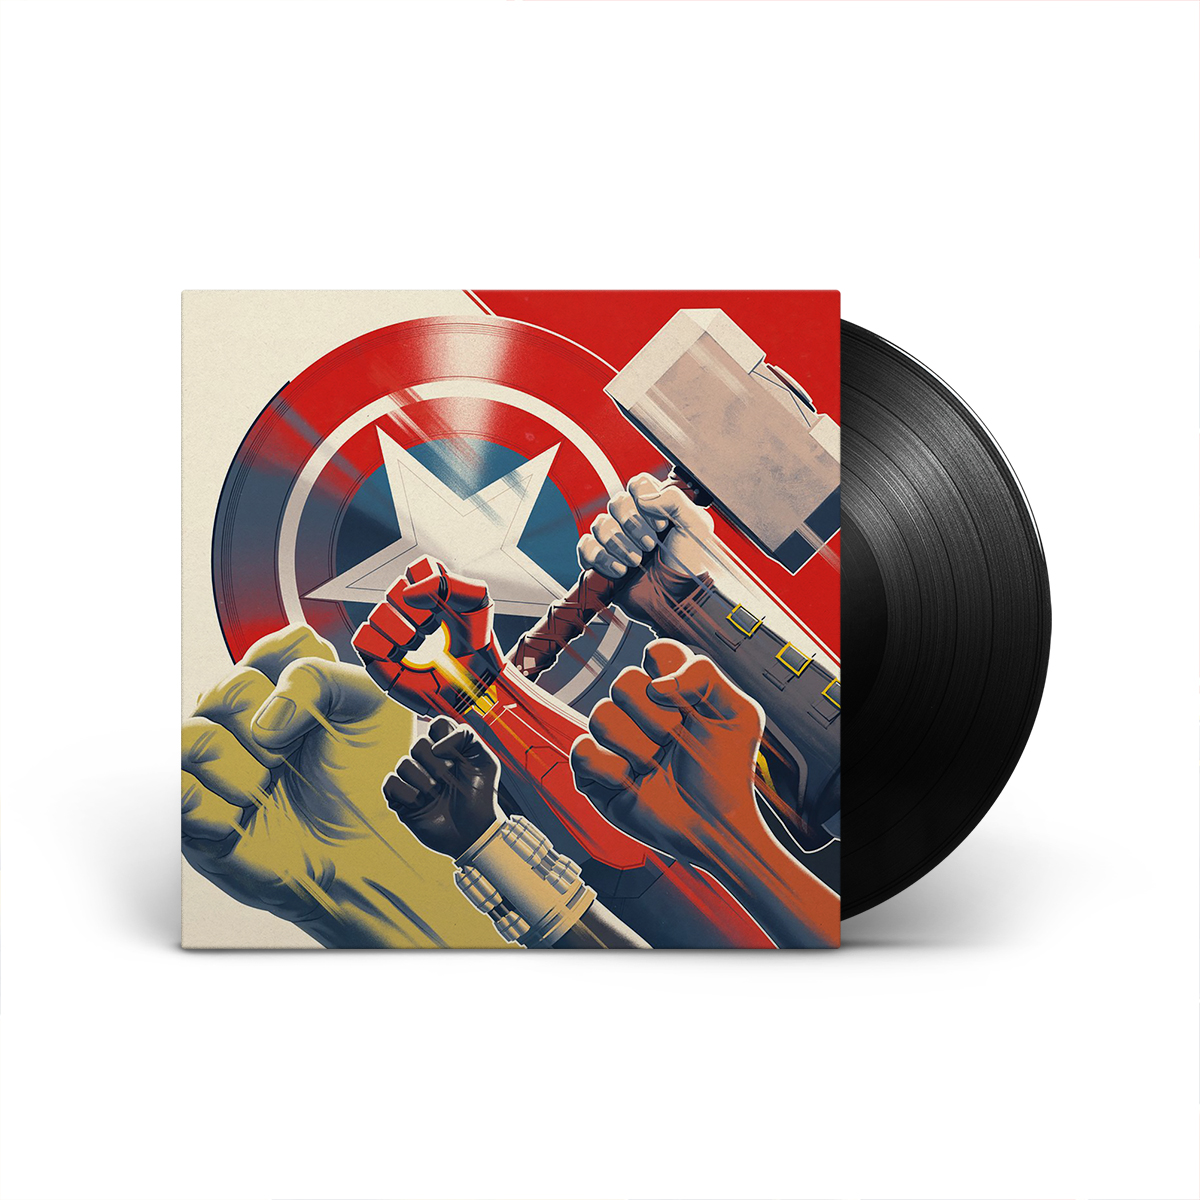 Marvel's The Avengers Videogame soundtrack